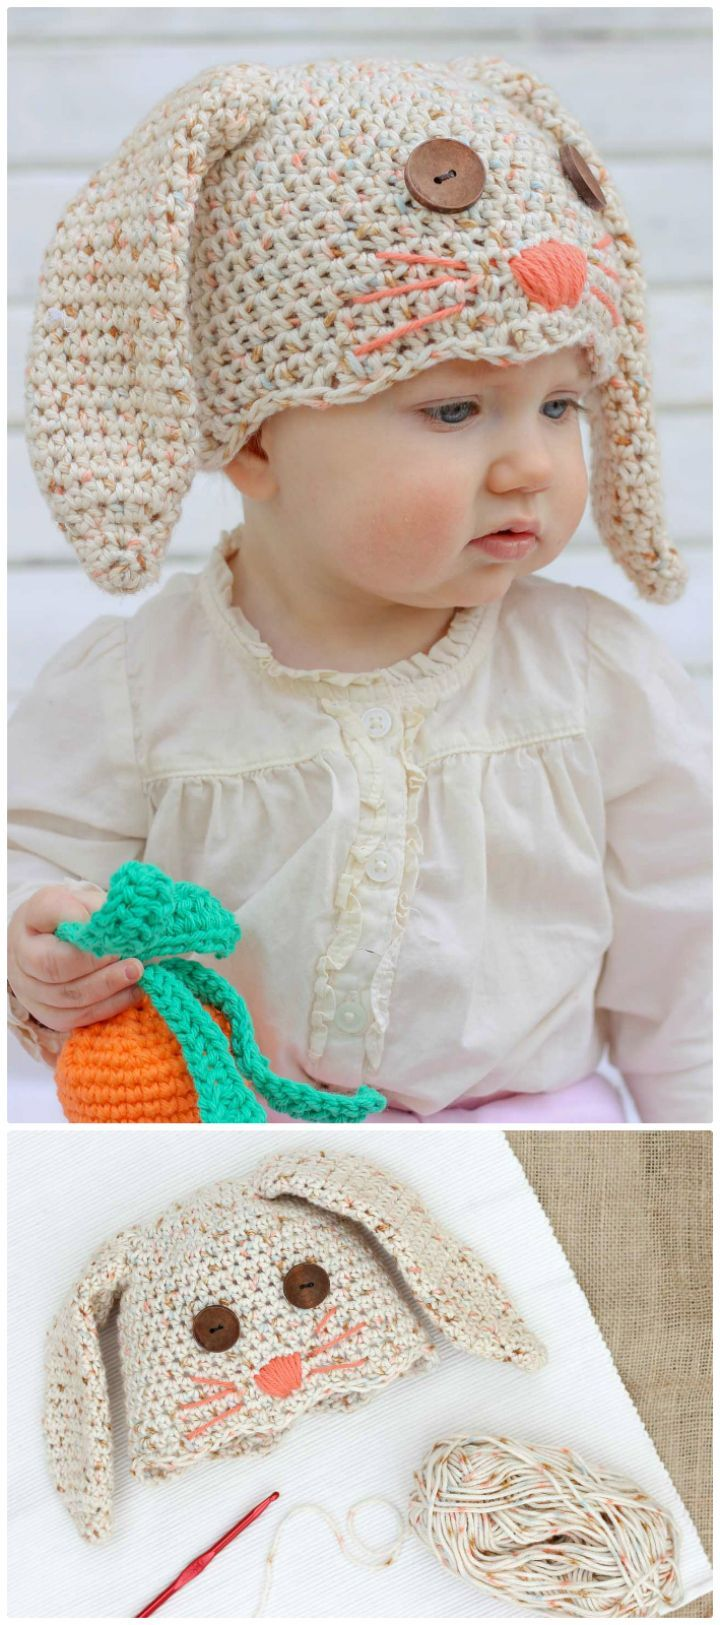 63 Free Crochet Bunny Amigurumi Patterns - Page 3 of 6 | Crochet ...